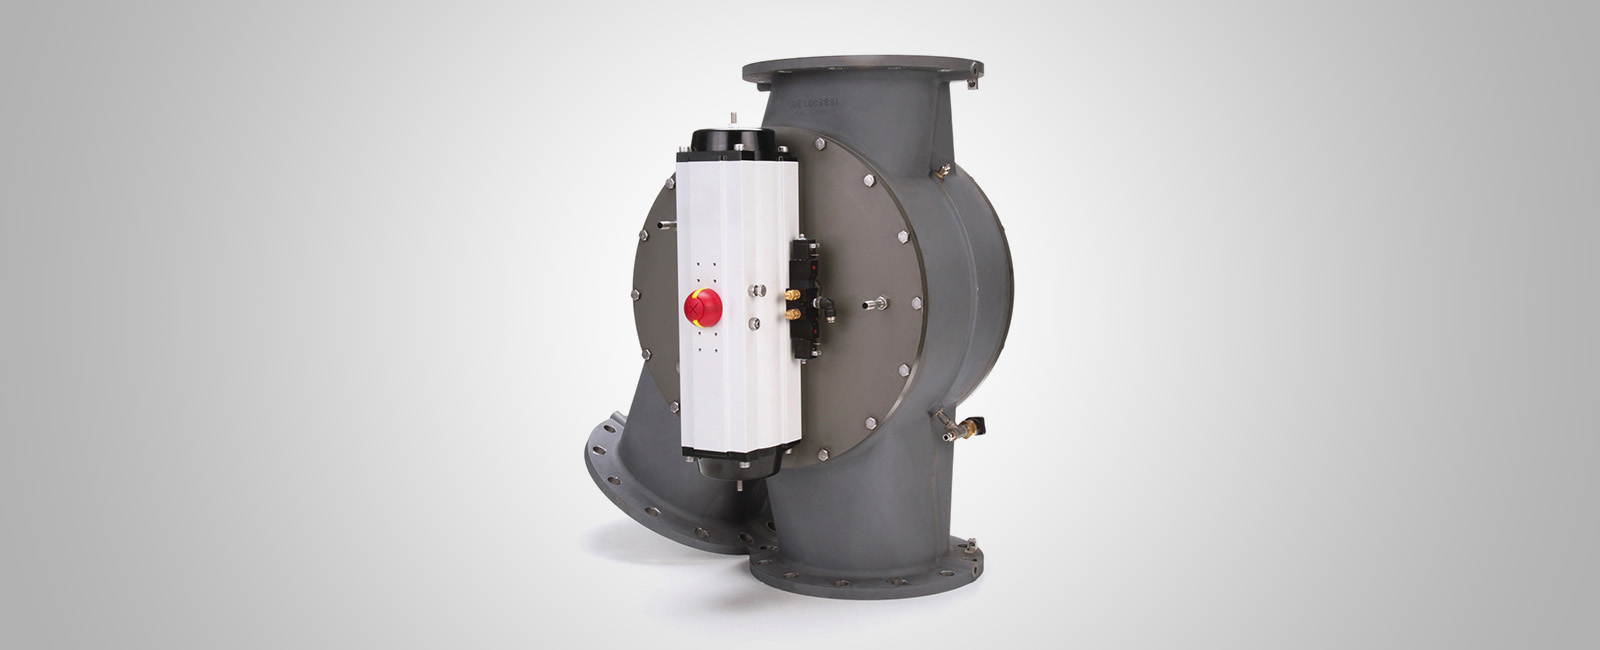 Schenck Process announces newly designed Plug Single Tunnel (PST30) Diverter Valve